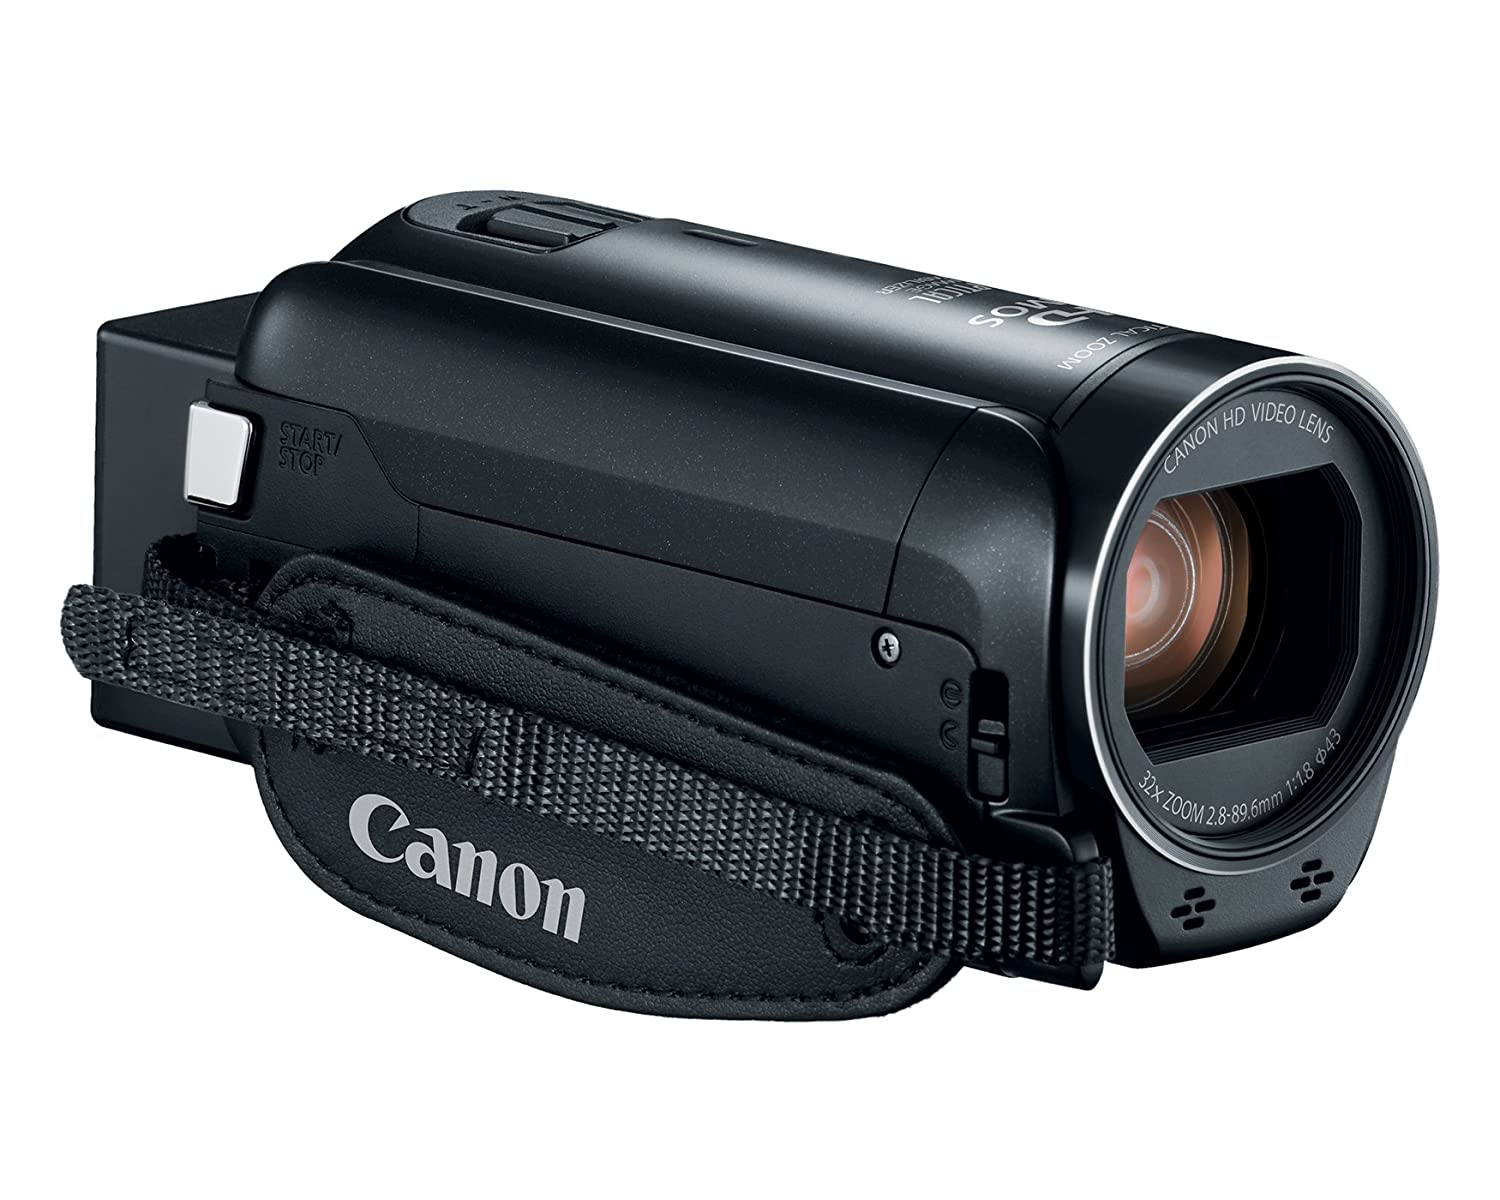 8 Best Camcorder under 500 in 2020 buying guides 1